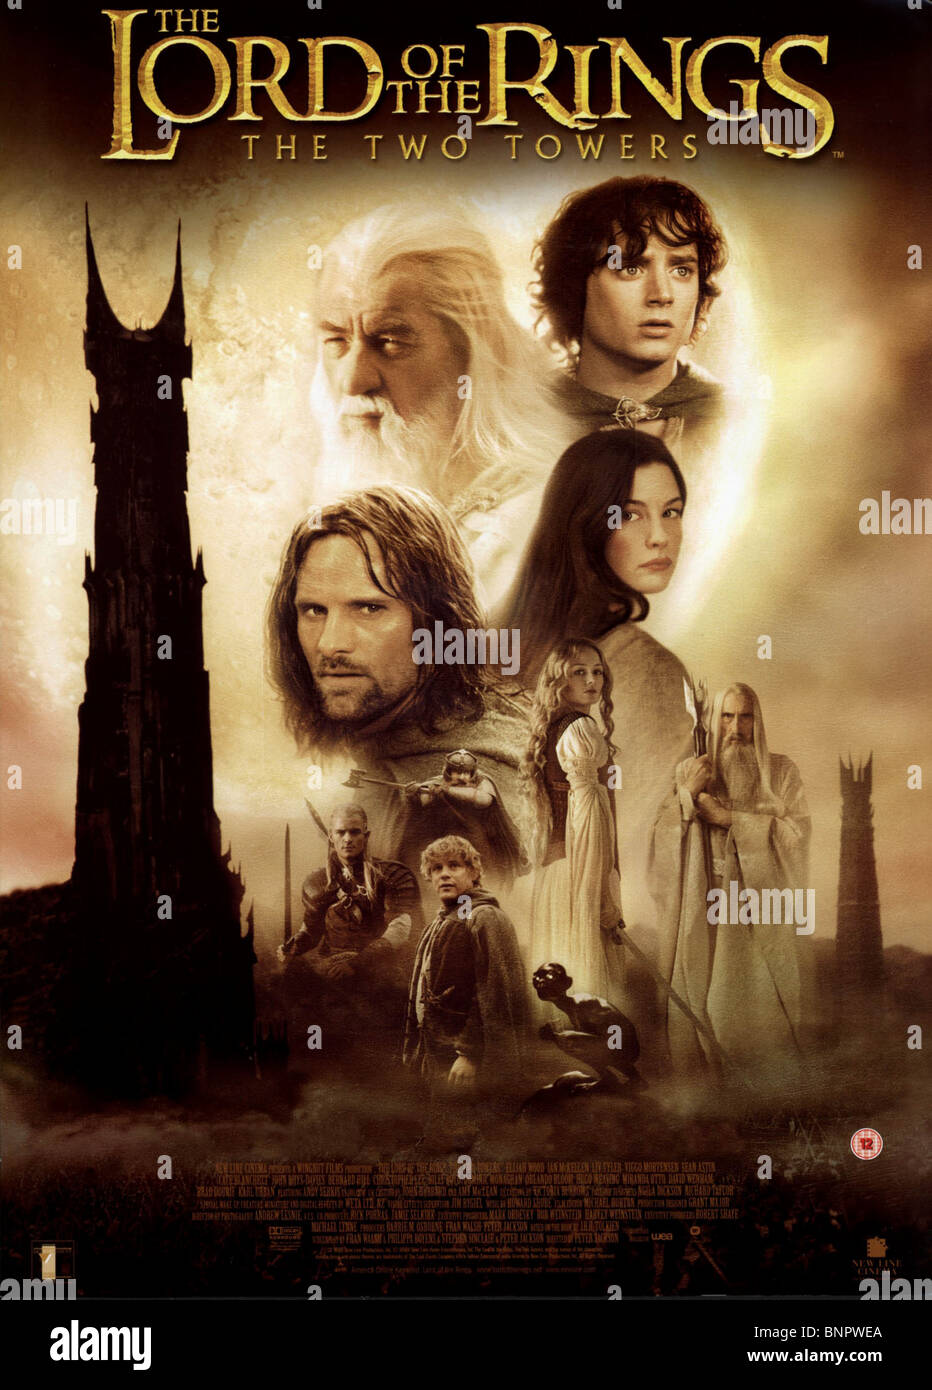 Film Poster The Lord Of The Rings The Two Towers 2002 Stock Photo Alamy